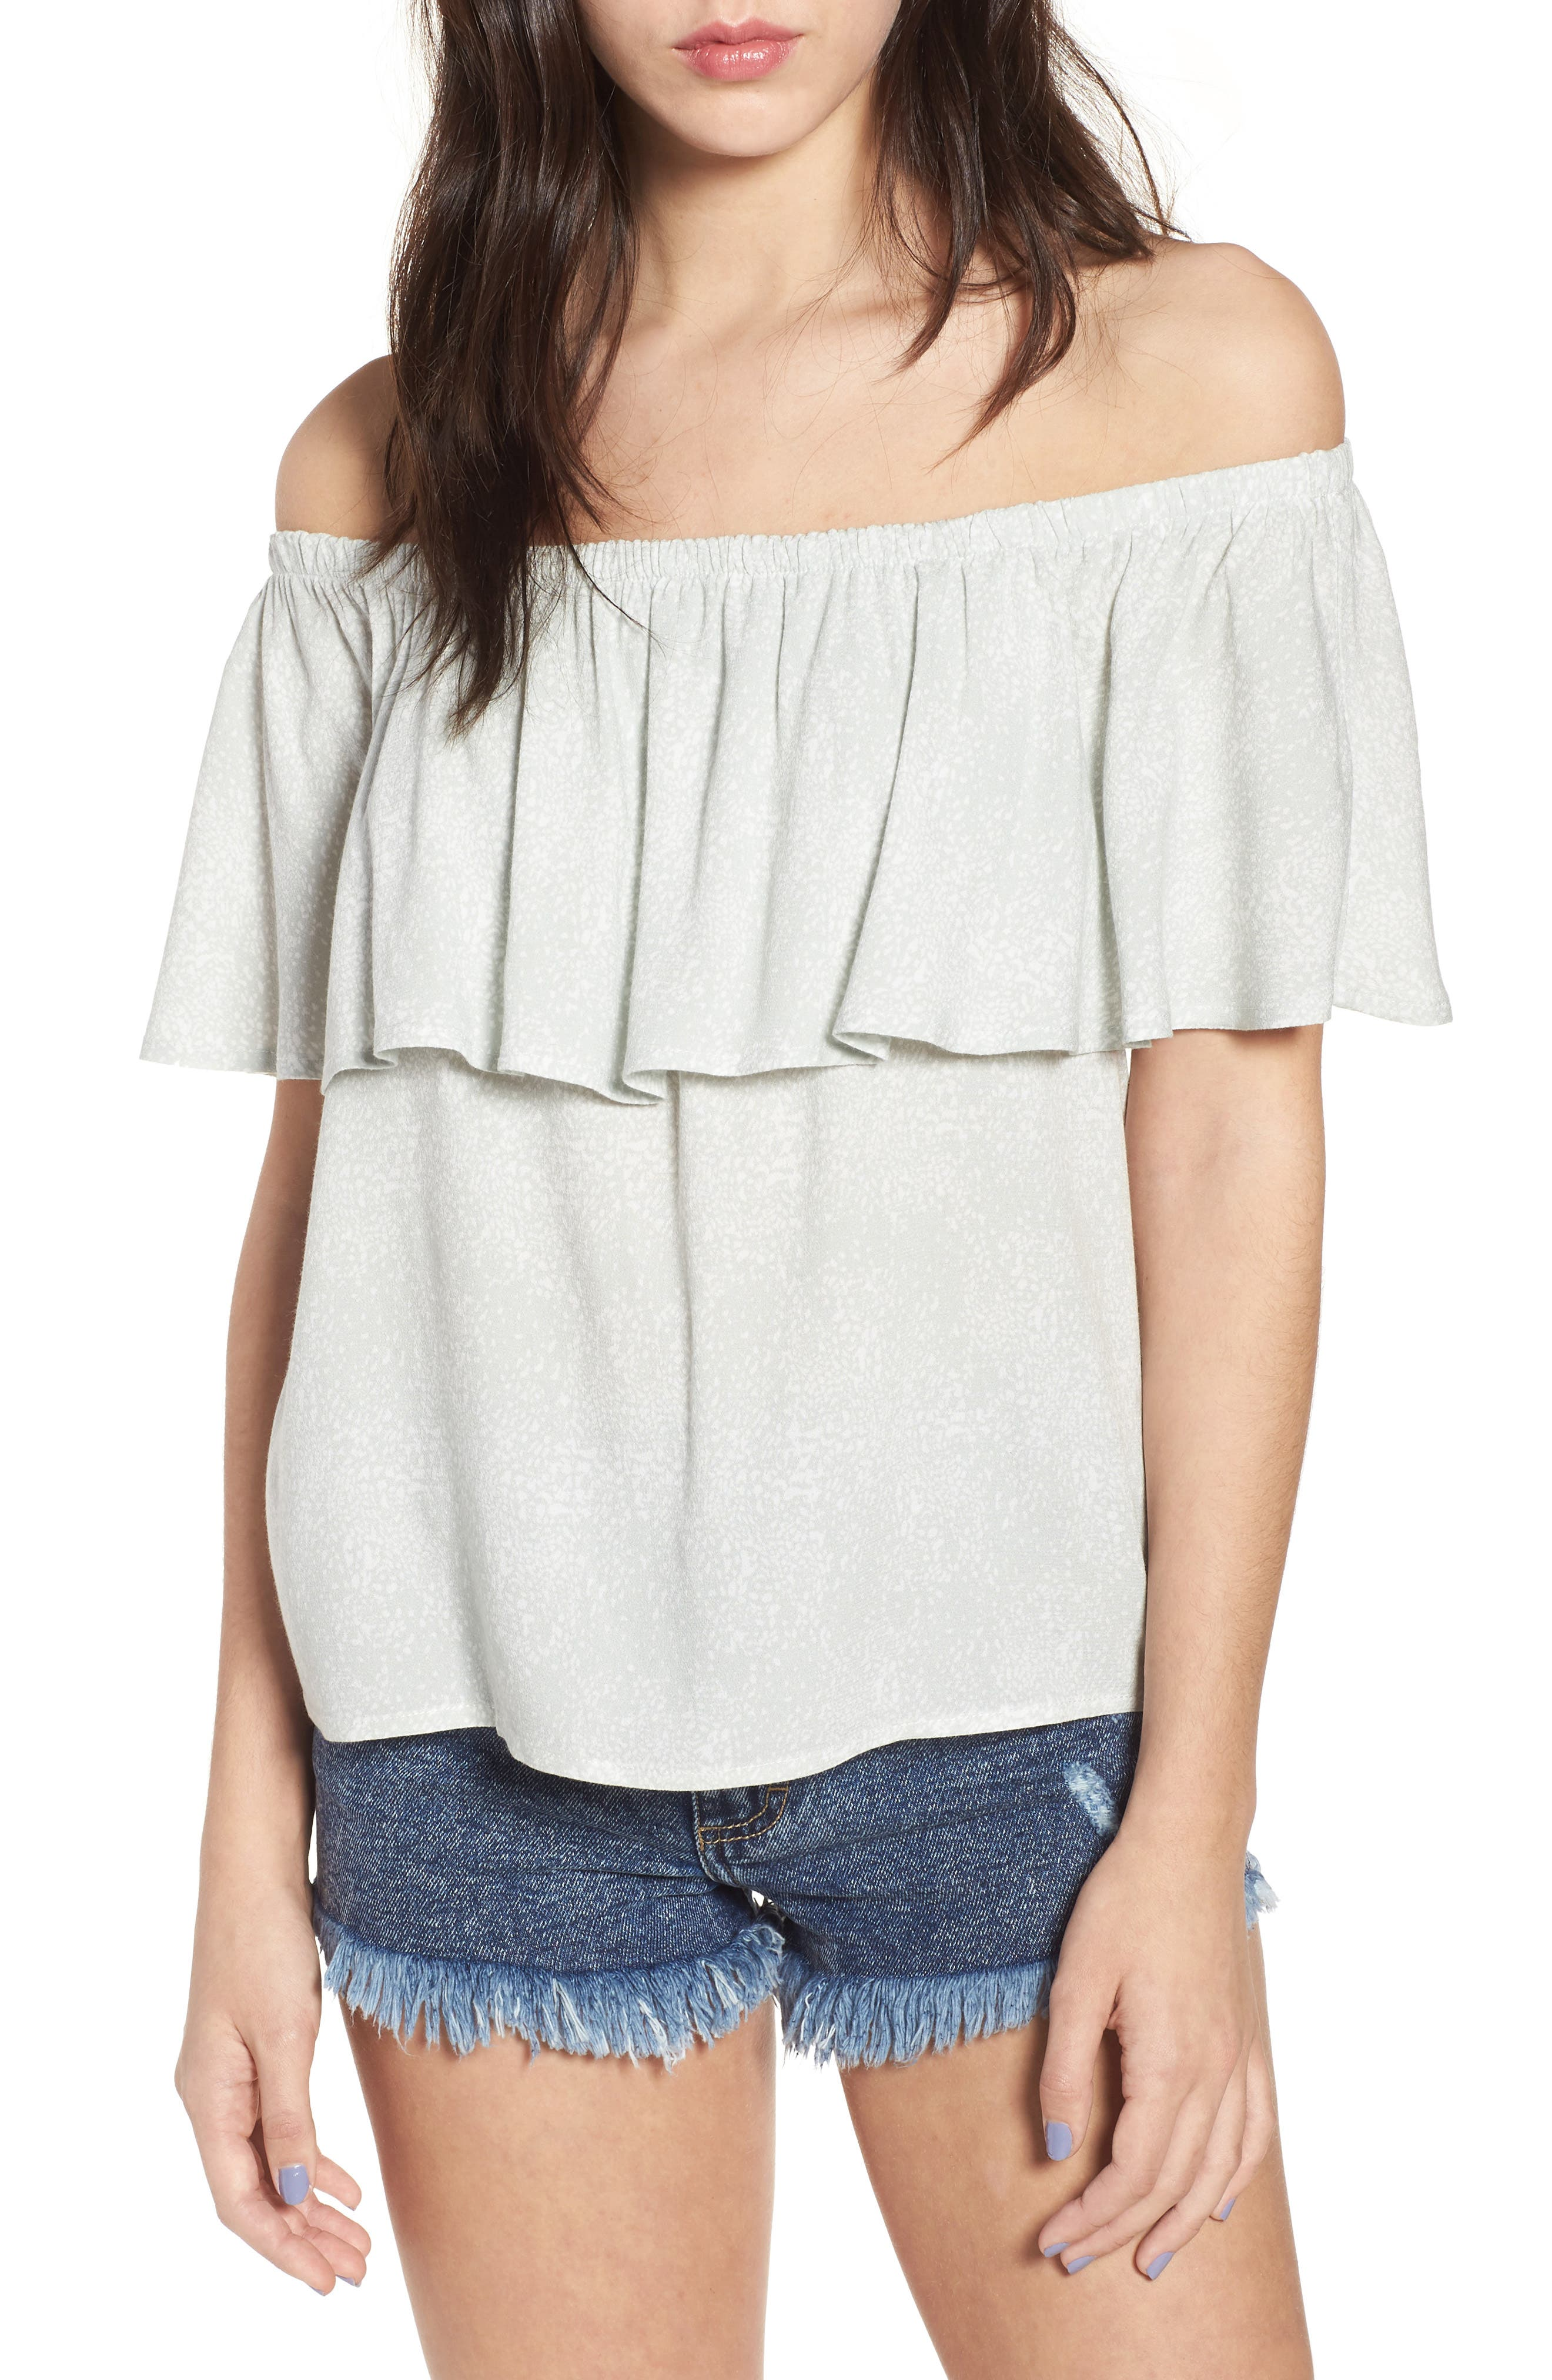 Main Image - Lira Clothing Mary Off the Shoulder Top